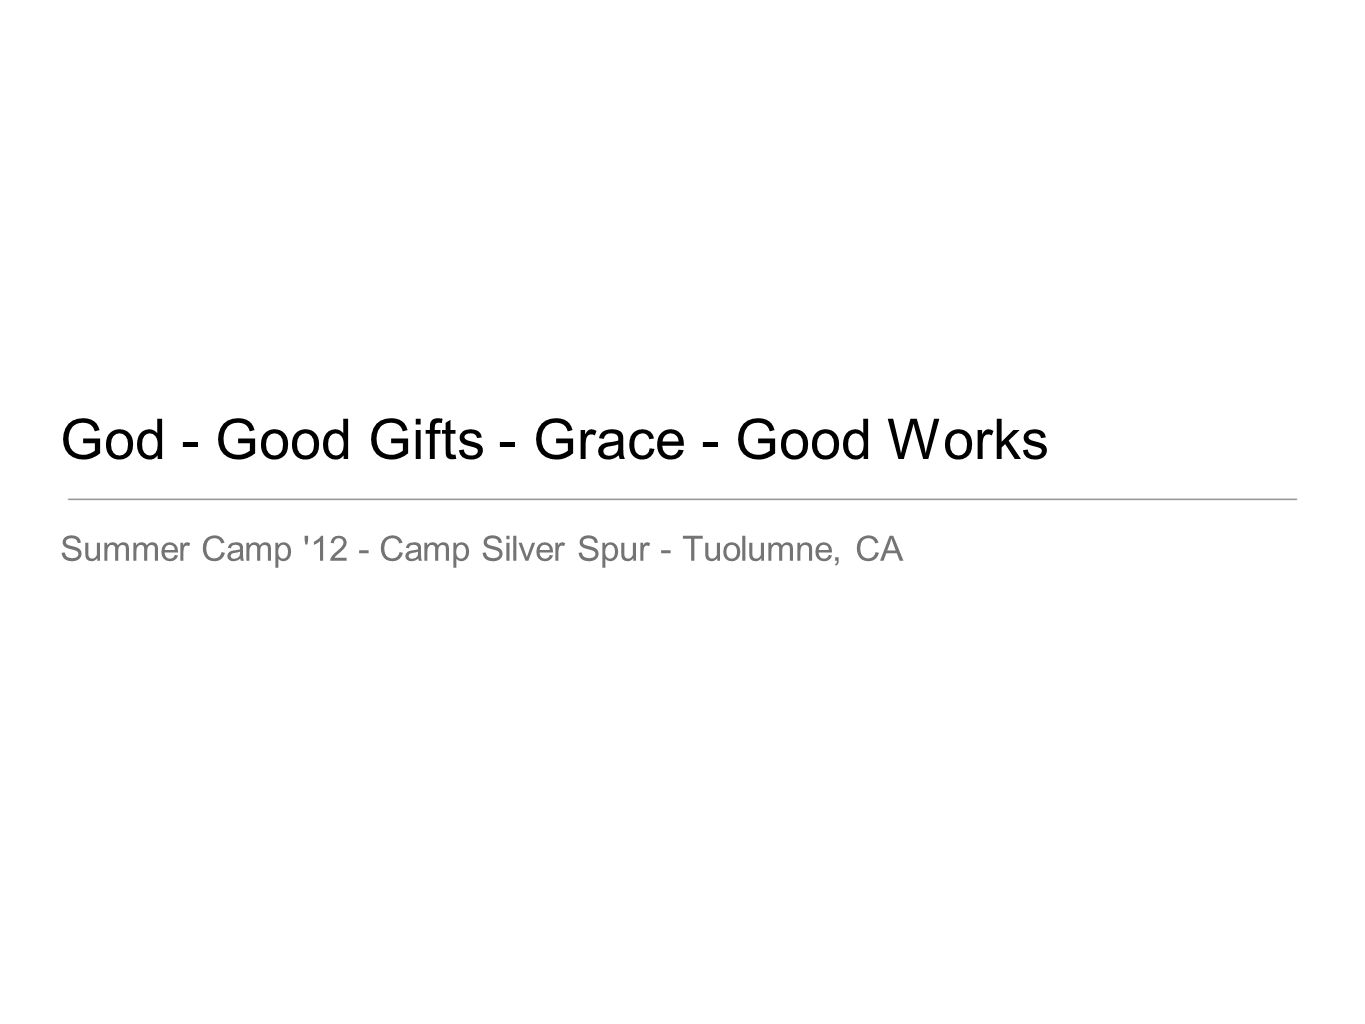 God - Good Gifts - Grace - Good Works